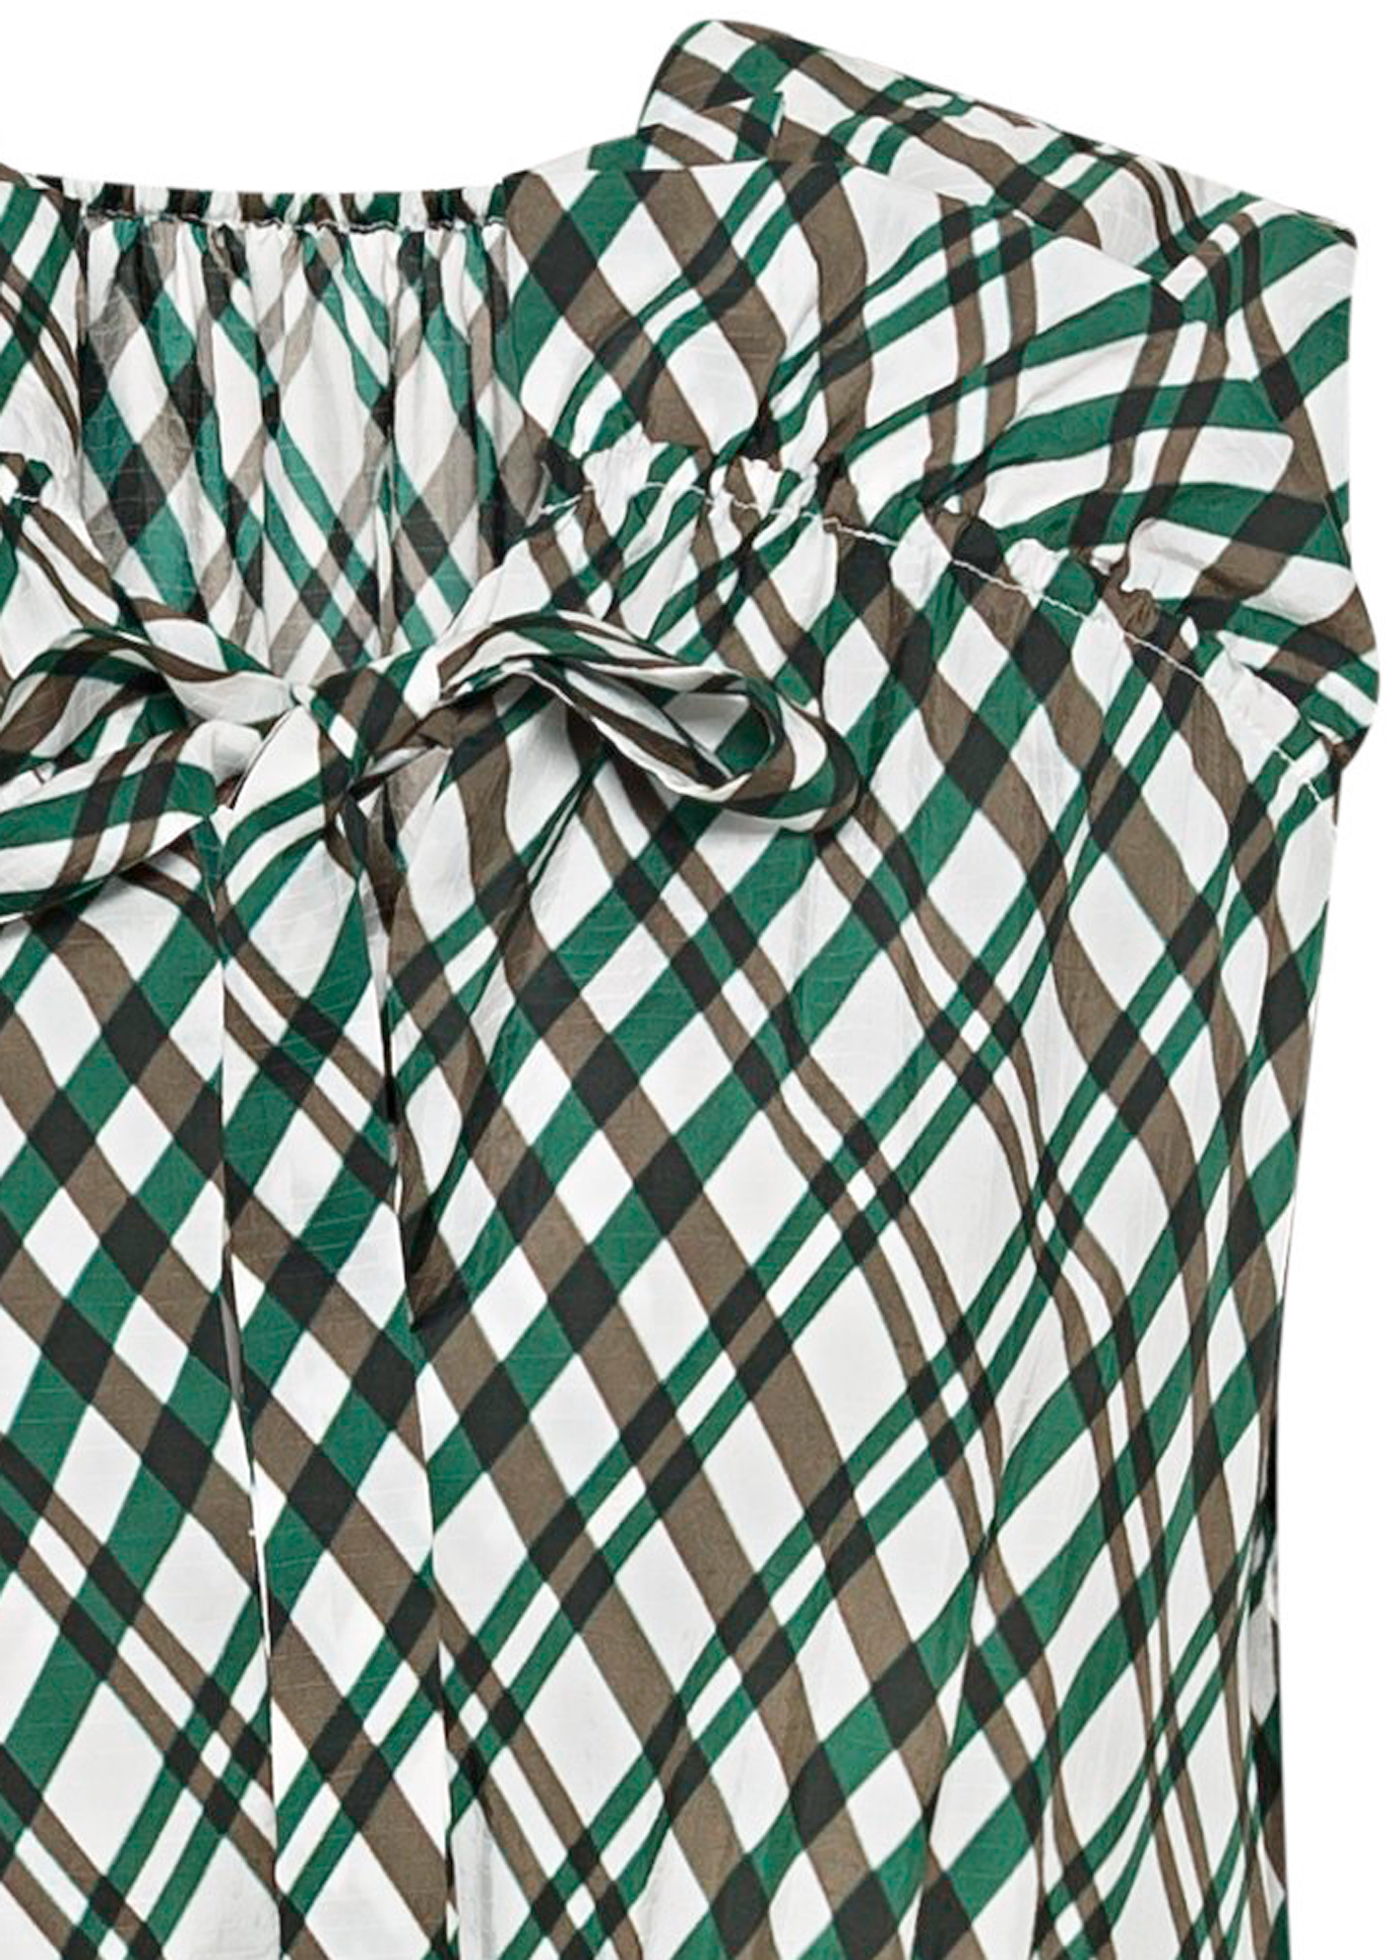 SHORTSLEEVE DRESS WITH GATHERING AND RUFFLE DETAIL image number 2